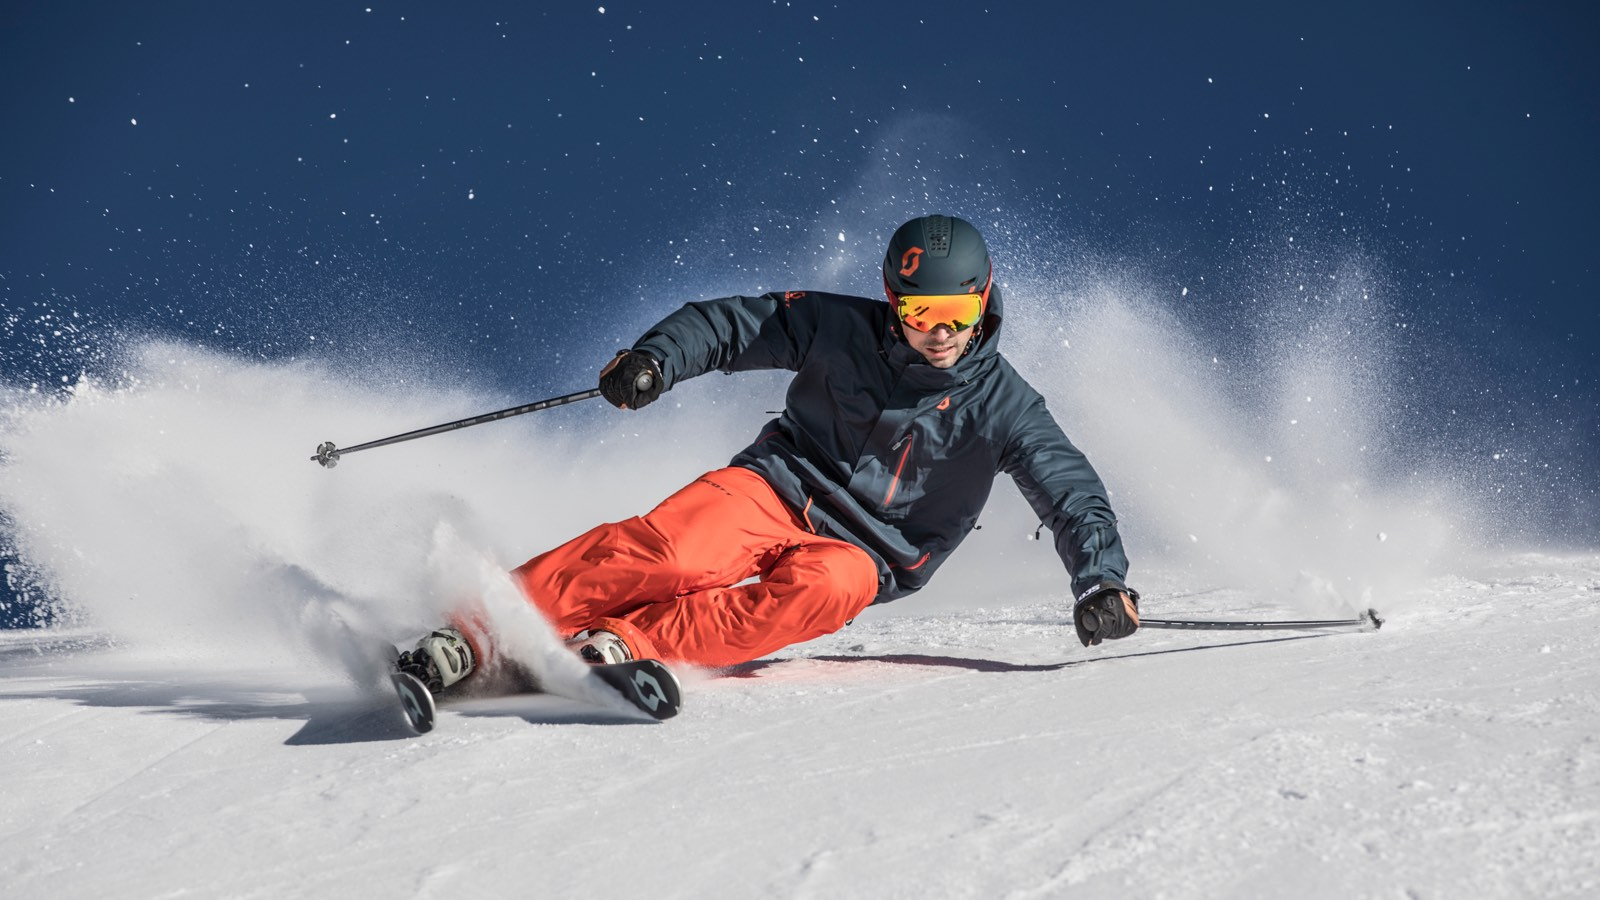 carving hard